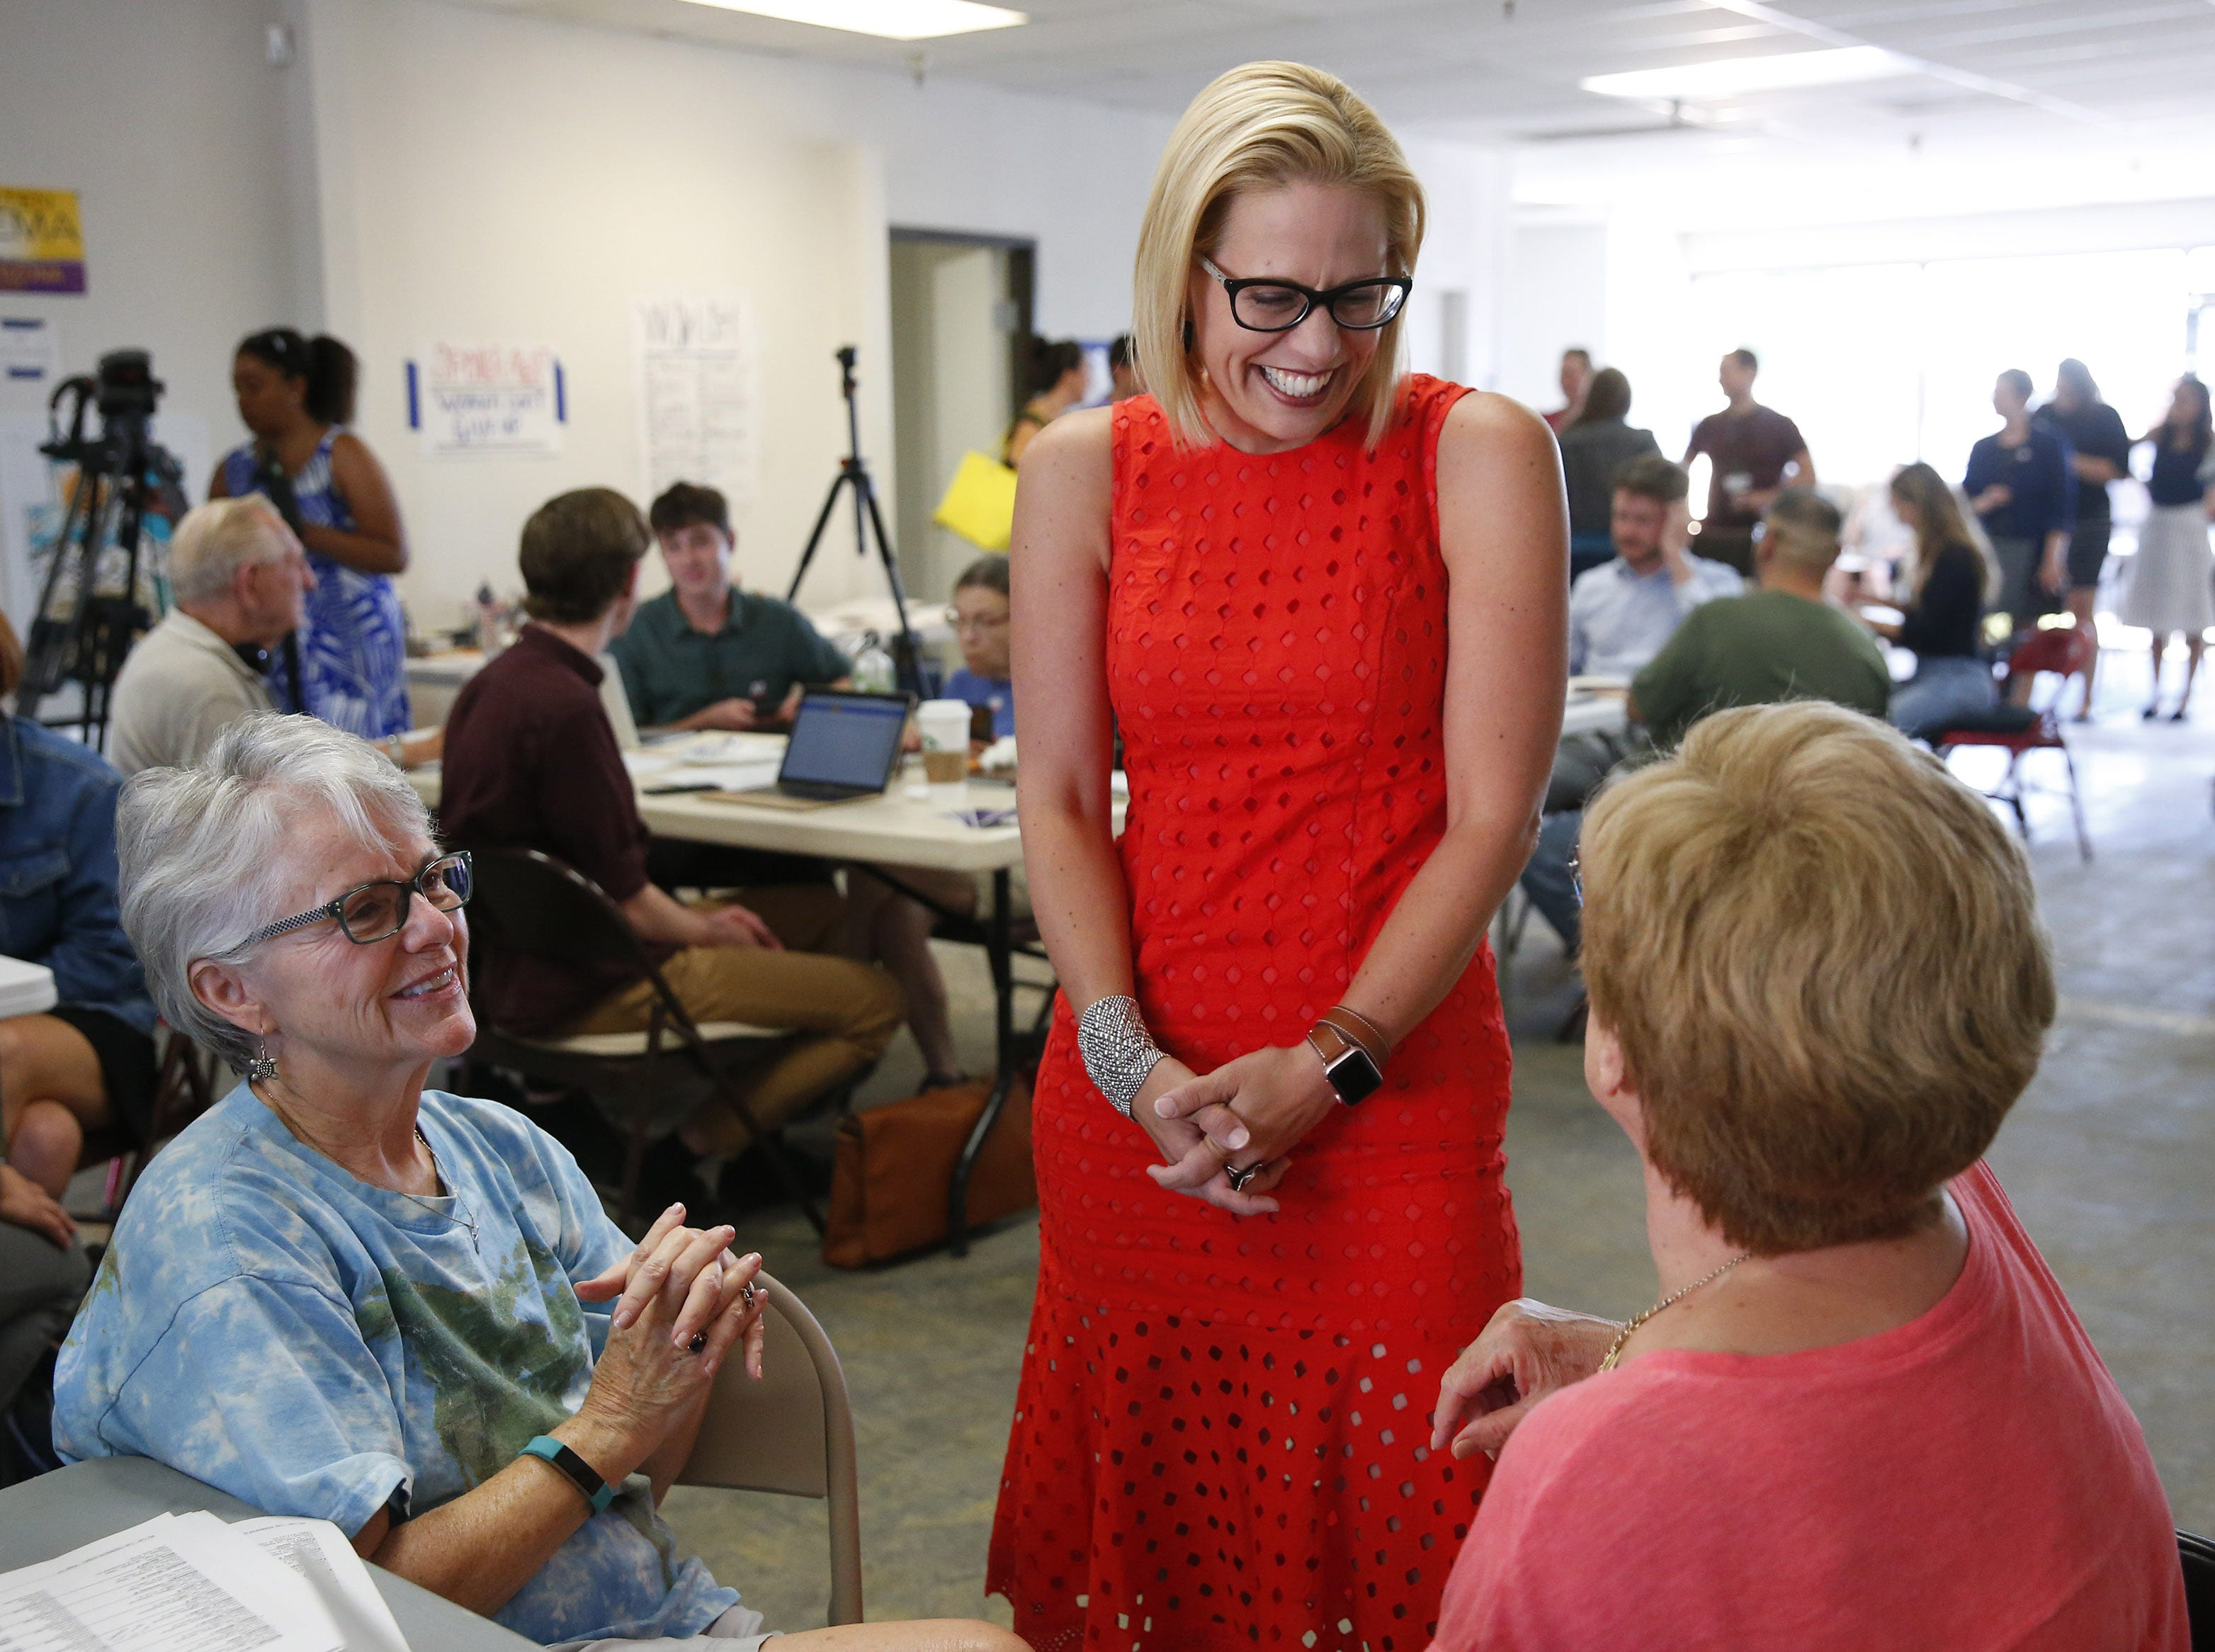 Kyrsten Sinema thanks volunteers at her field office in Phoenix, Ariz. August 28. 2018. Sinema is vying for the Democratic nomination for the open U.S. Senate seat.